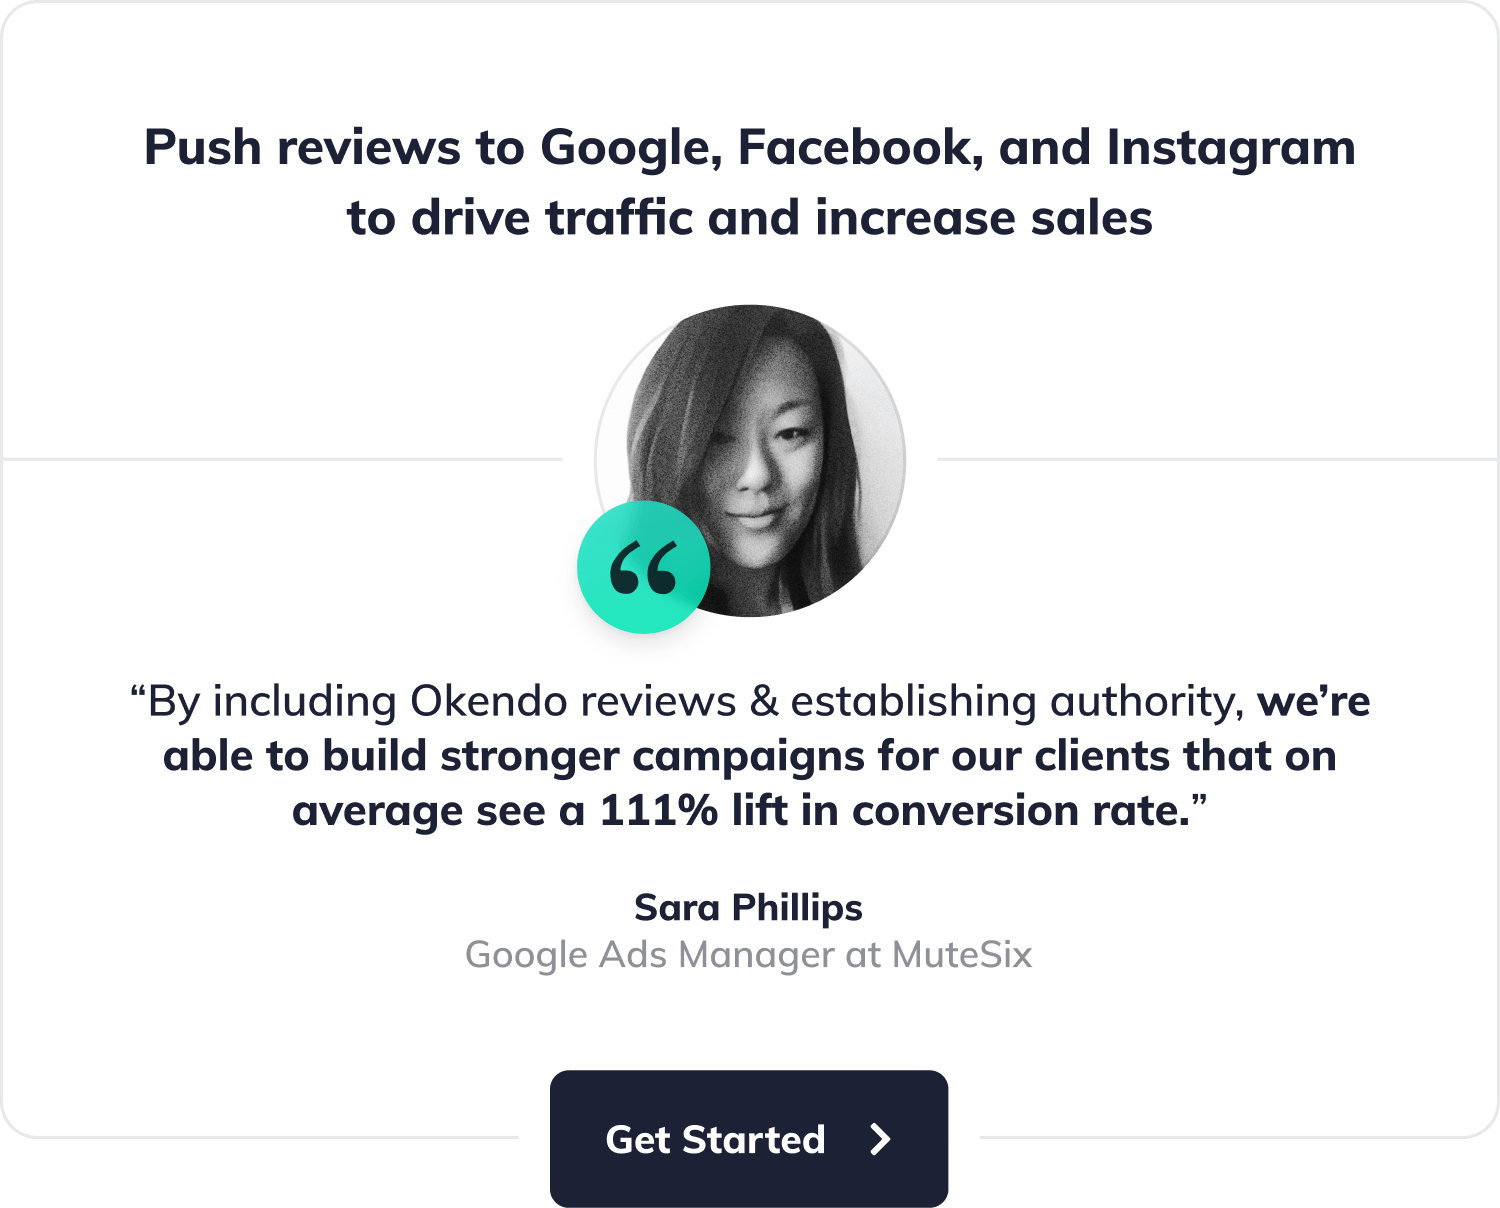 "Push reviews to Google, Facebook, and Instagram to drive traffic and increase sales. ""By including Okendo reviews & establishing authority, we're able to build stronger campaigns for our clients that on average see a 111% lift in conversion rate"